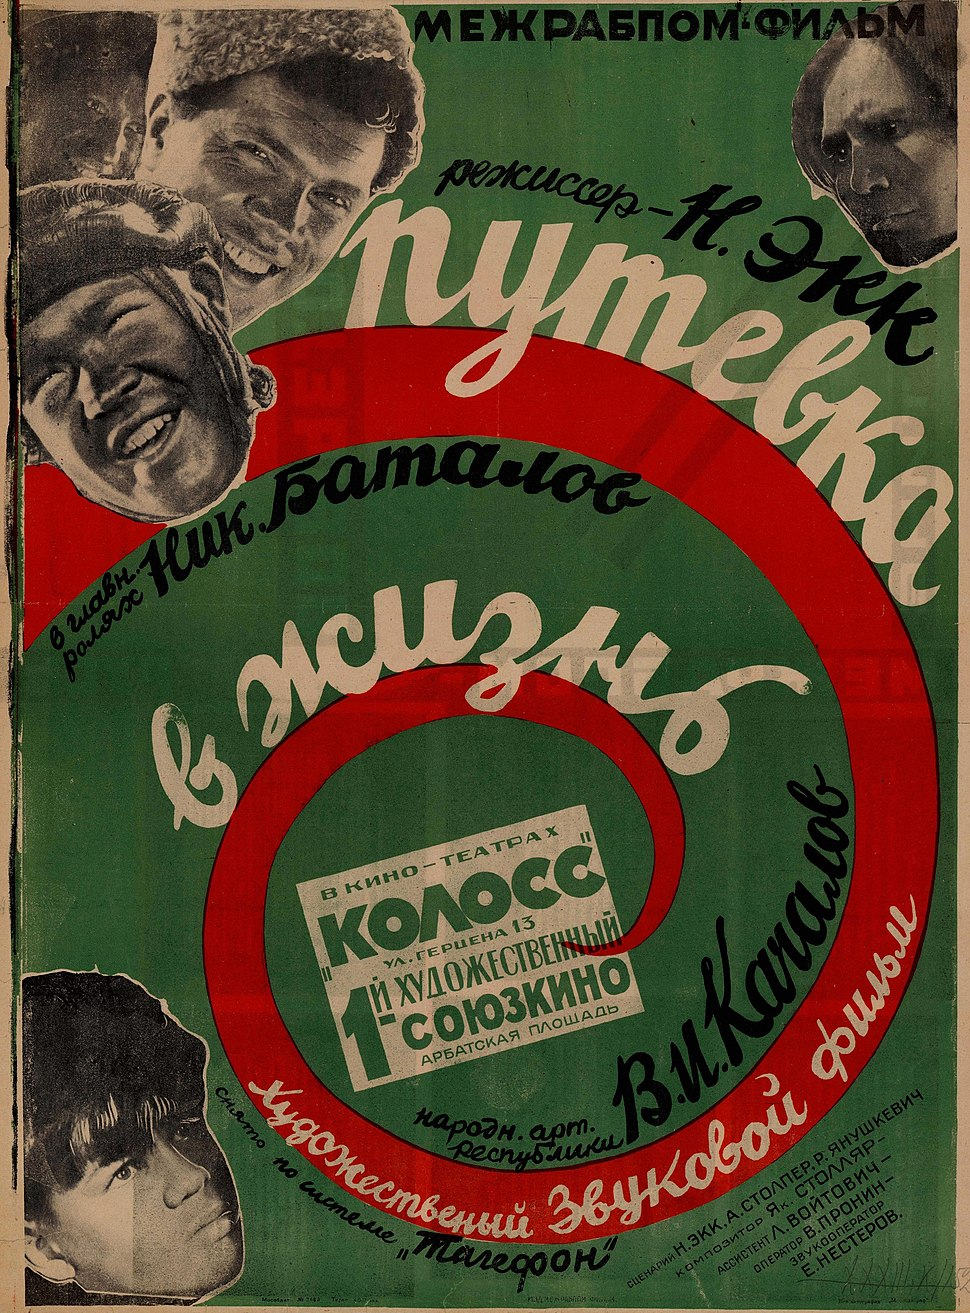 A movie poster with text in Cyrillic. A red band spirals through the center of the image, over a green background. Around the spiral are arrayed five black-and-white photographs of male faces at various angles. Three, in a cluster at the top left, are smiling; two, at the top left and at bottom right (a young boy) look pensive.